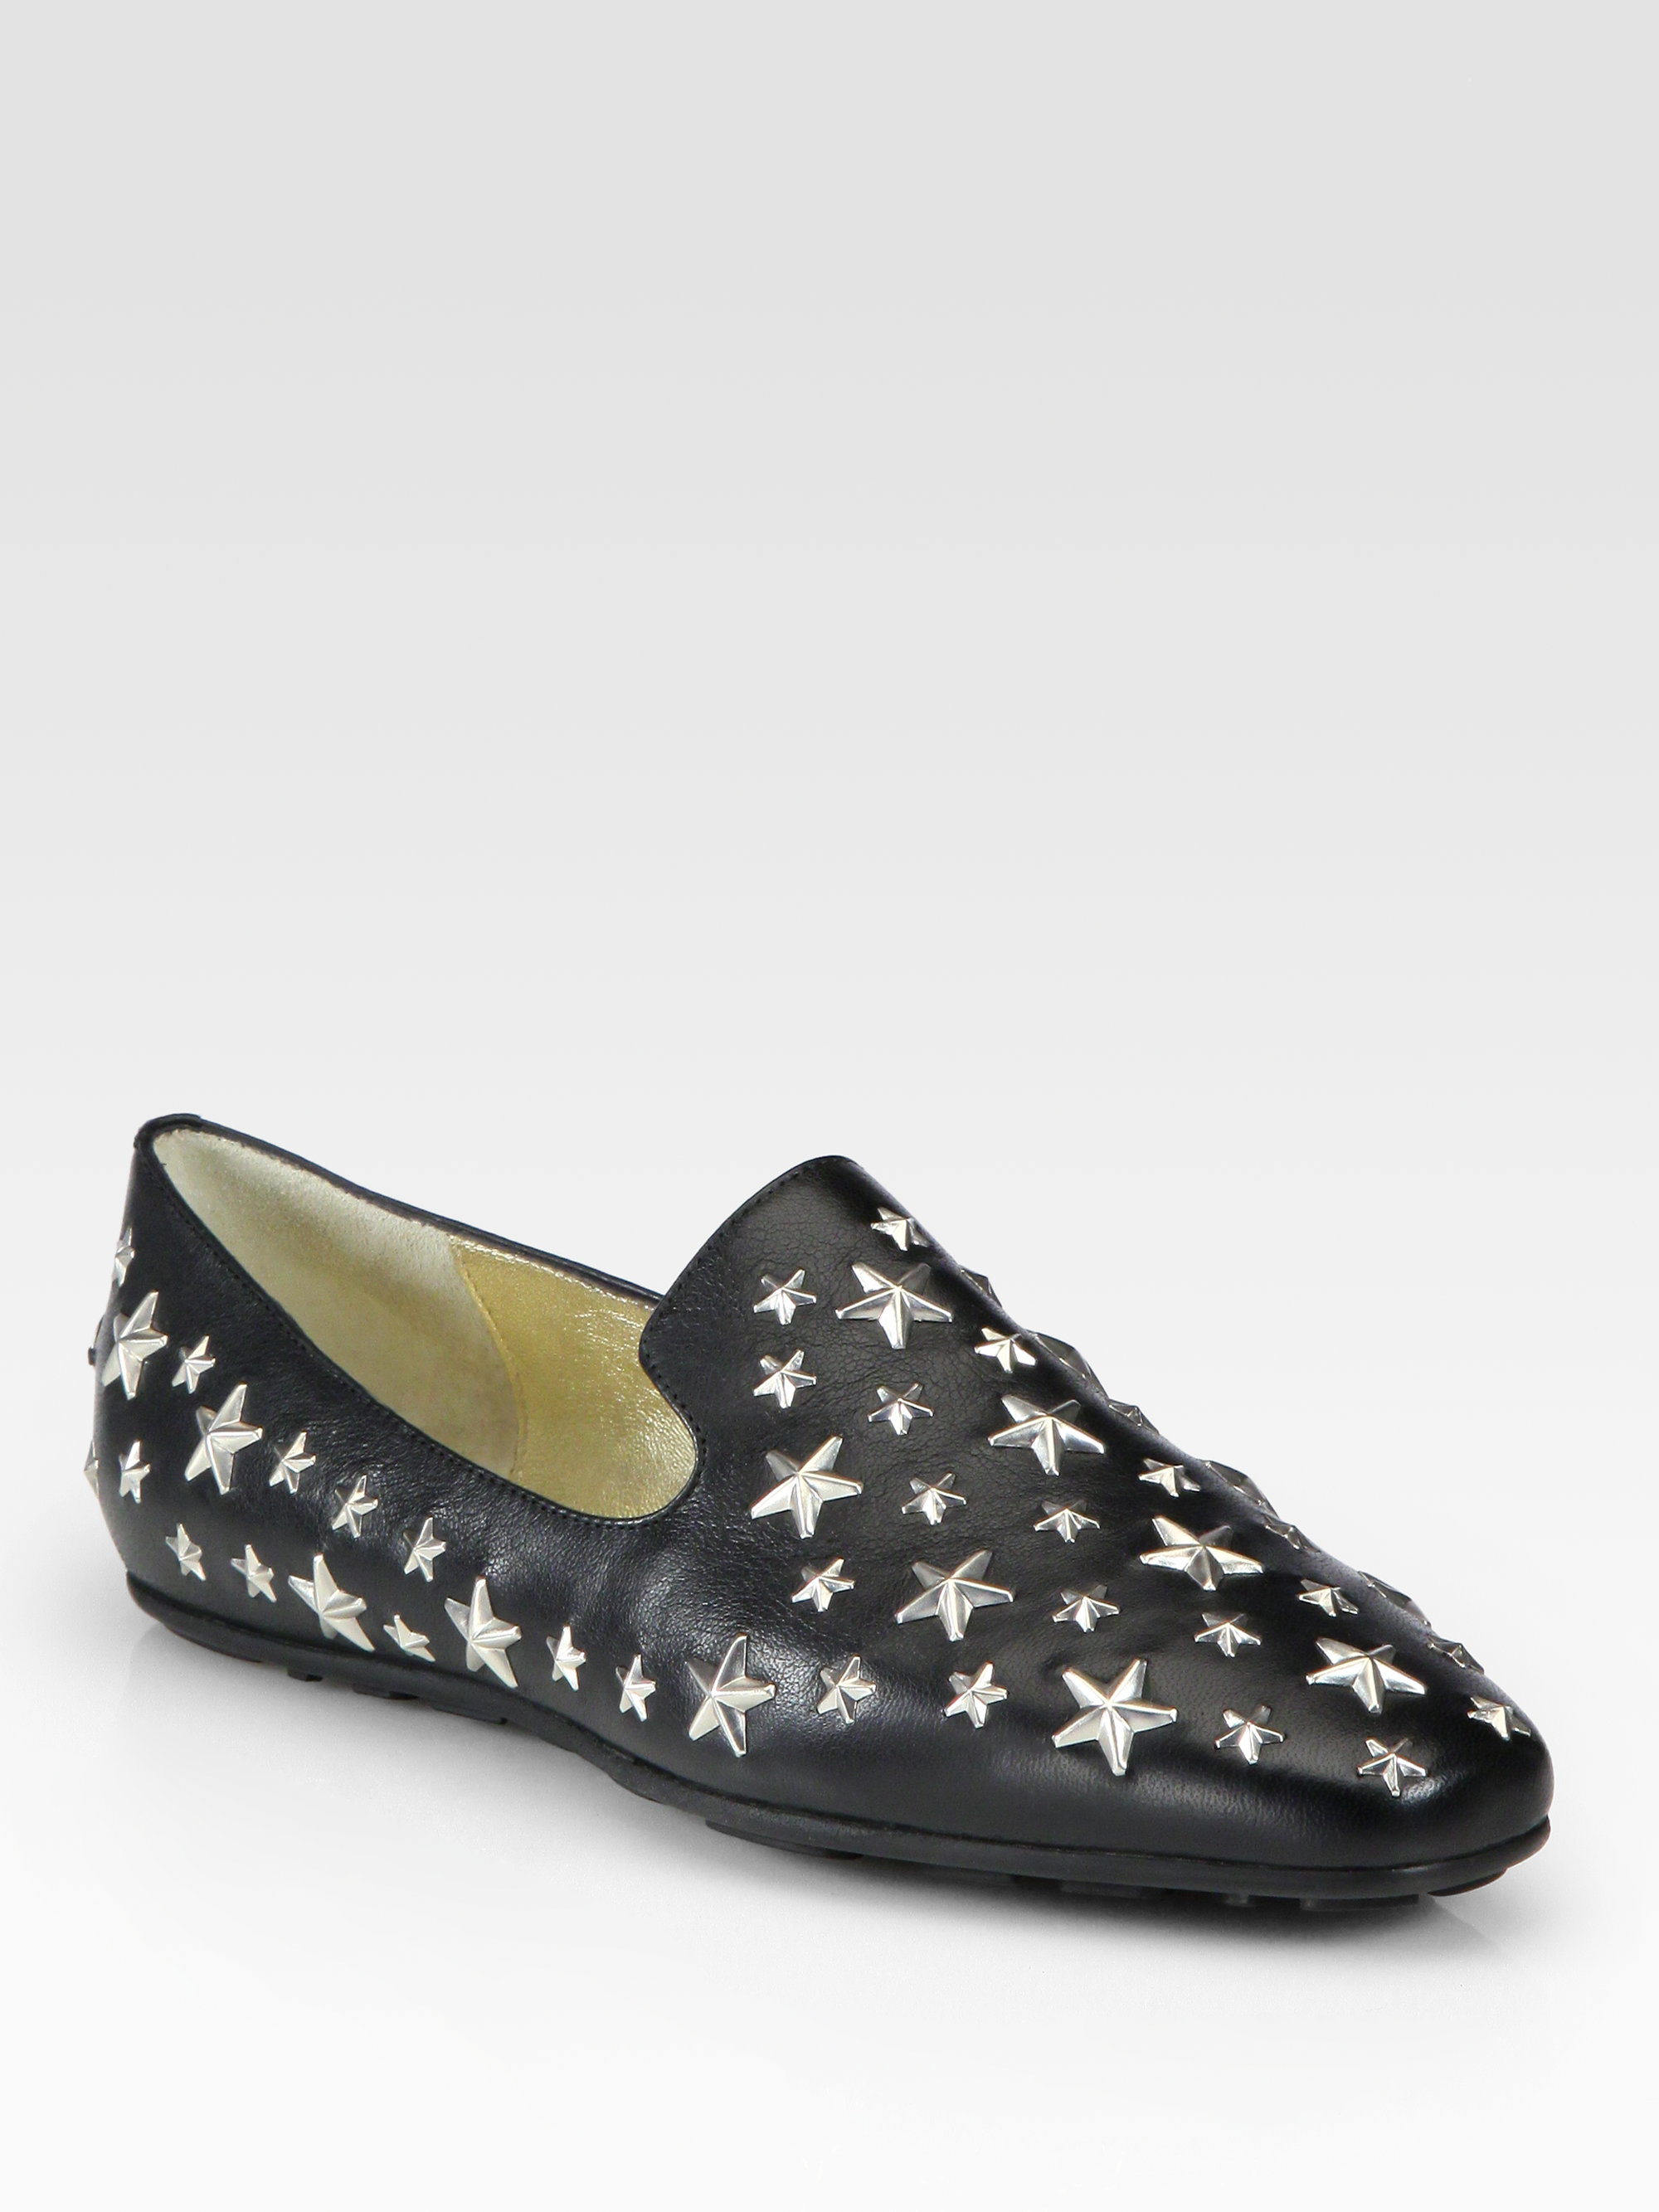 07a27d079362 Lyst - Jimmy Choo Wheel Star Studded Leather Loafers in Black